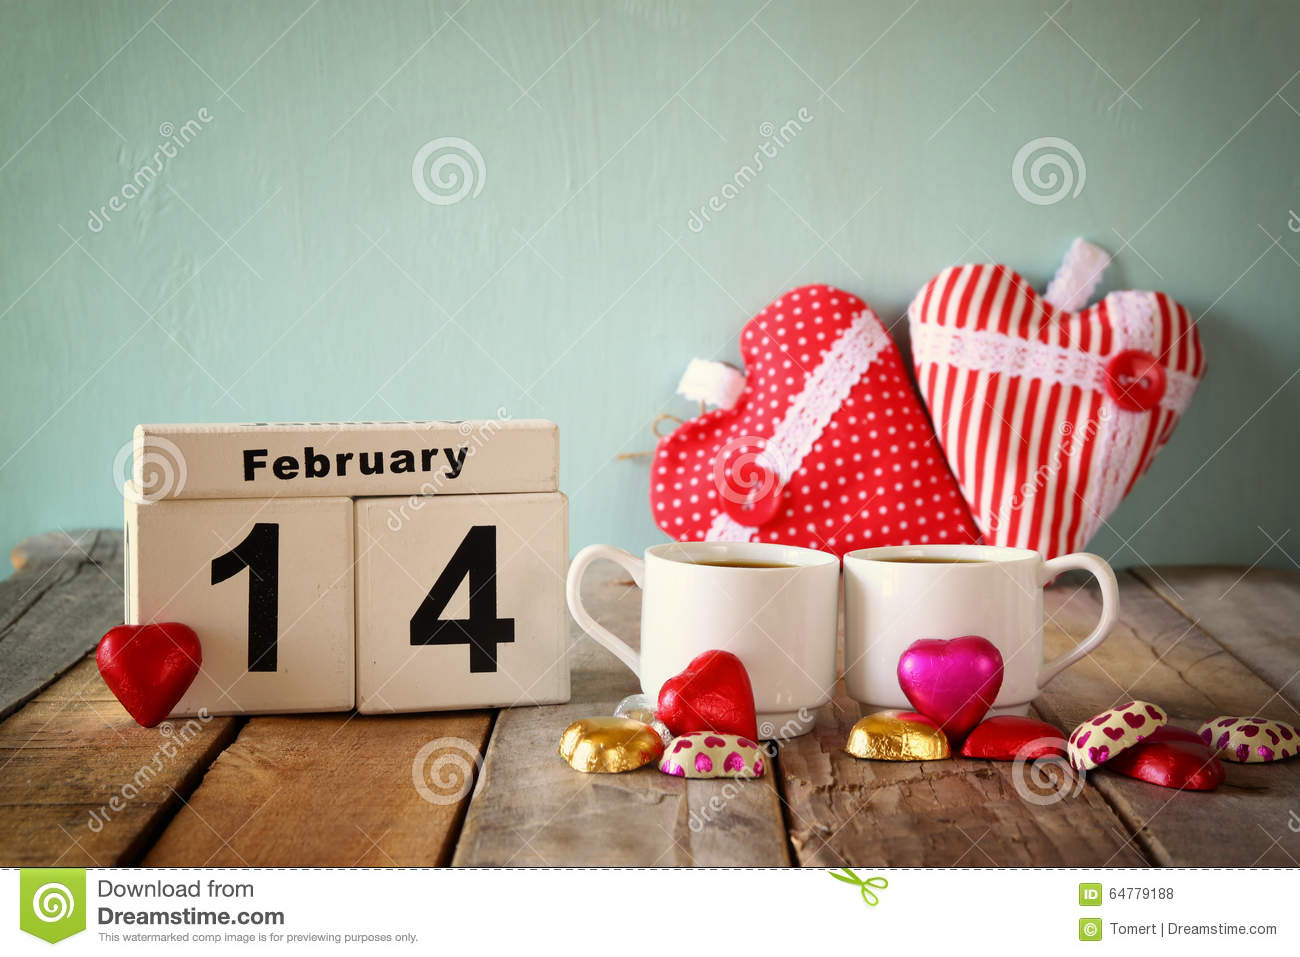 February 14th wooden vintage calendar with colorful heart shape chocolates next to couple cups on wooden table. selective focus